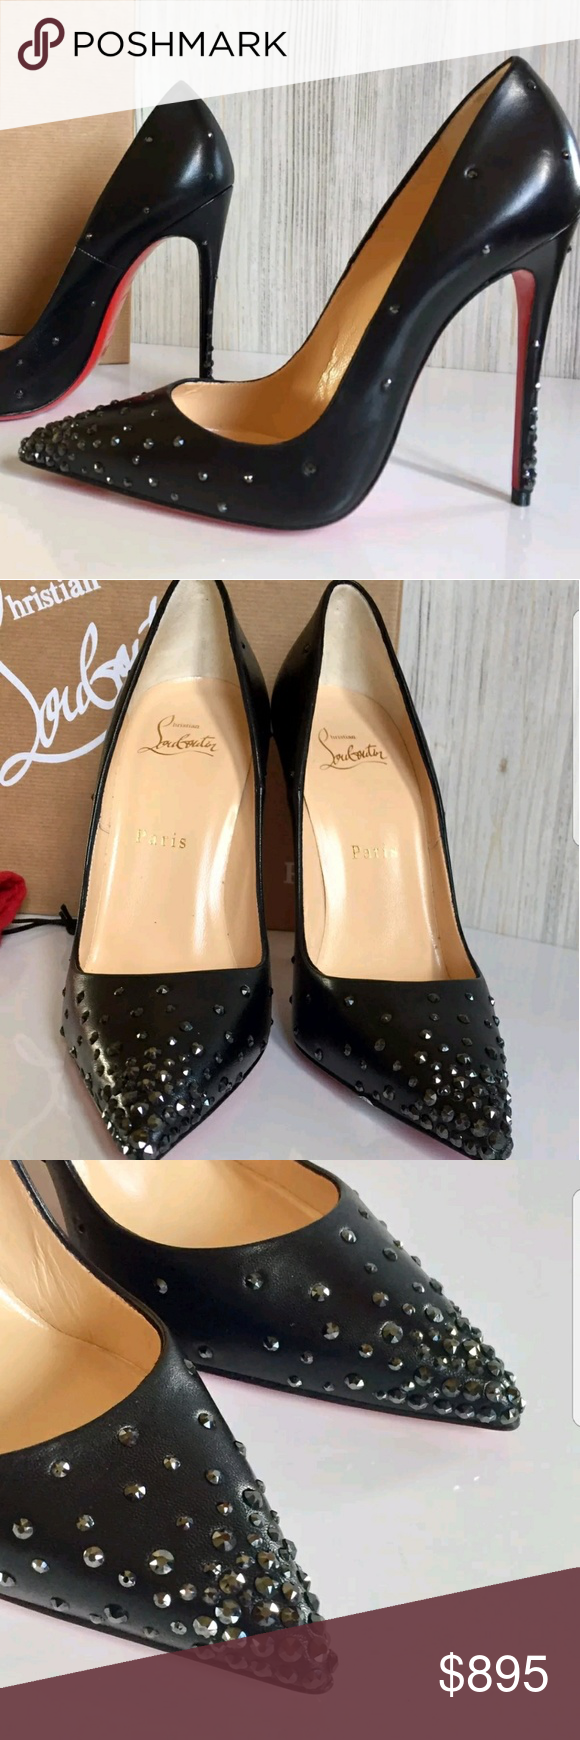 17361a953d40 Christian Louboutin So Kate Degrastrass Leather 41 Authentic breathtaking Christian  Louboutin Degrastrass 120 mm heel in